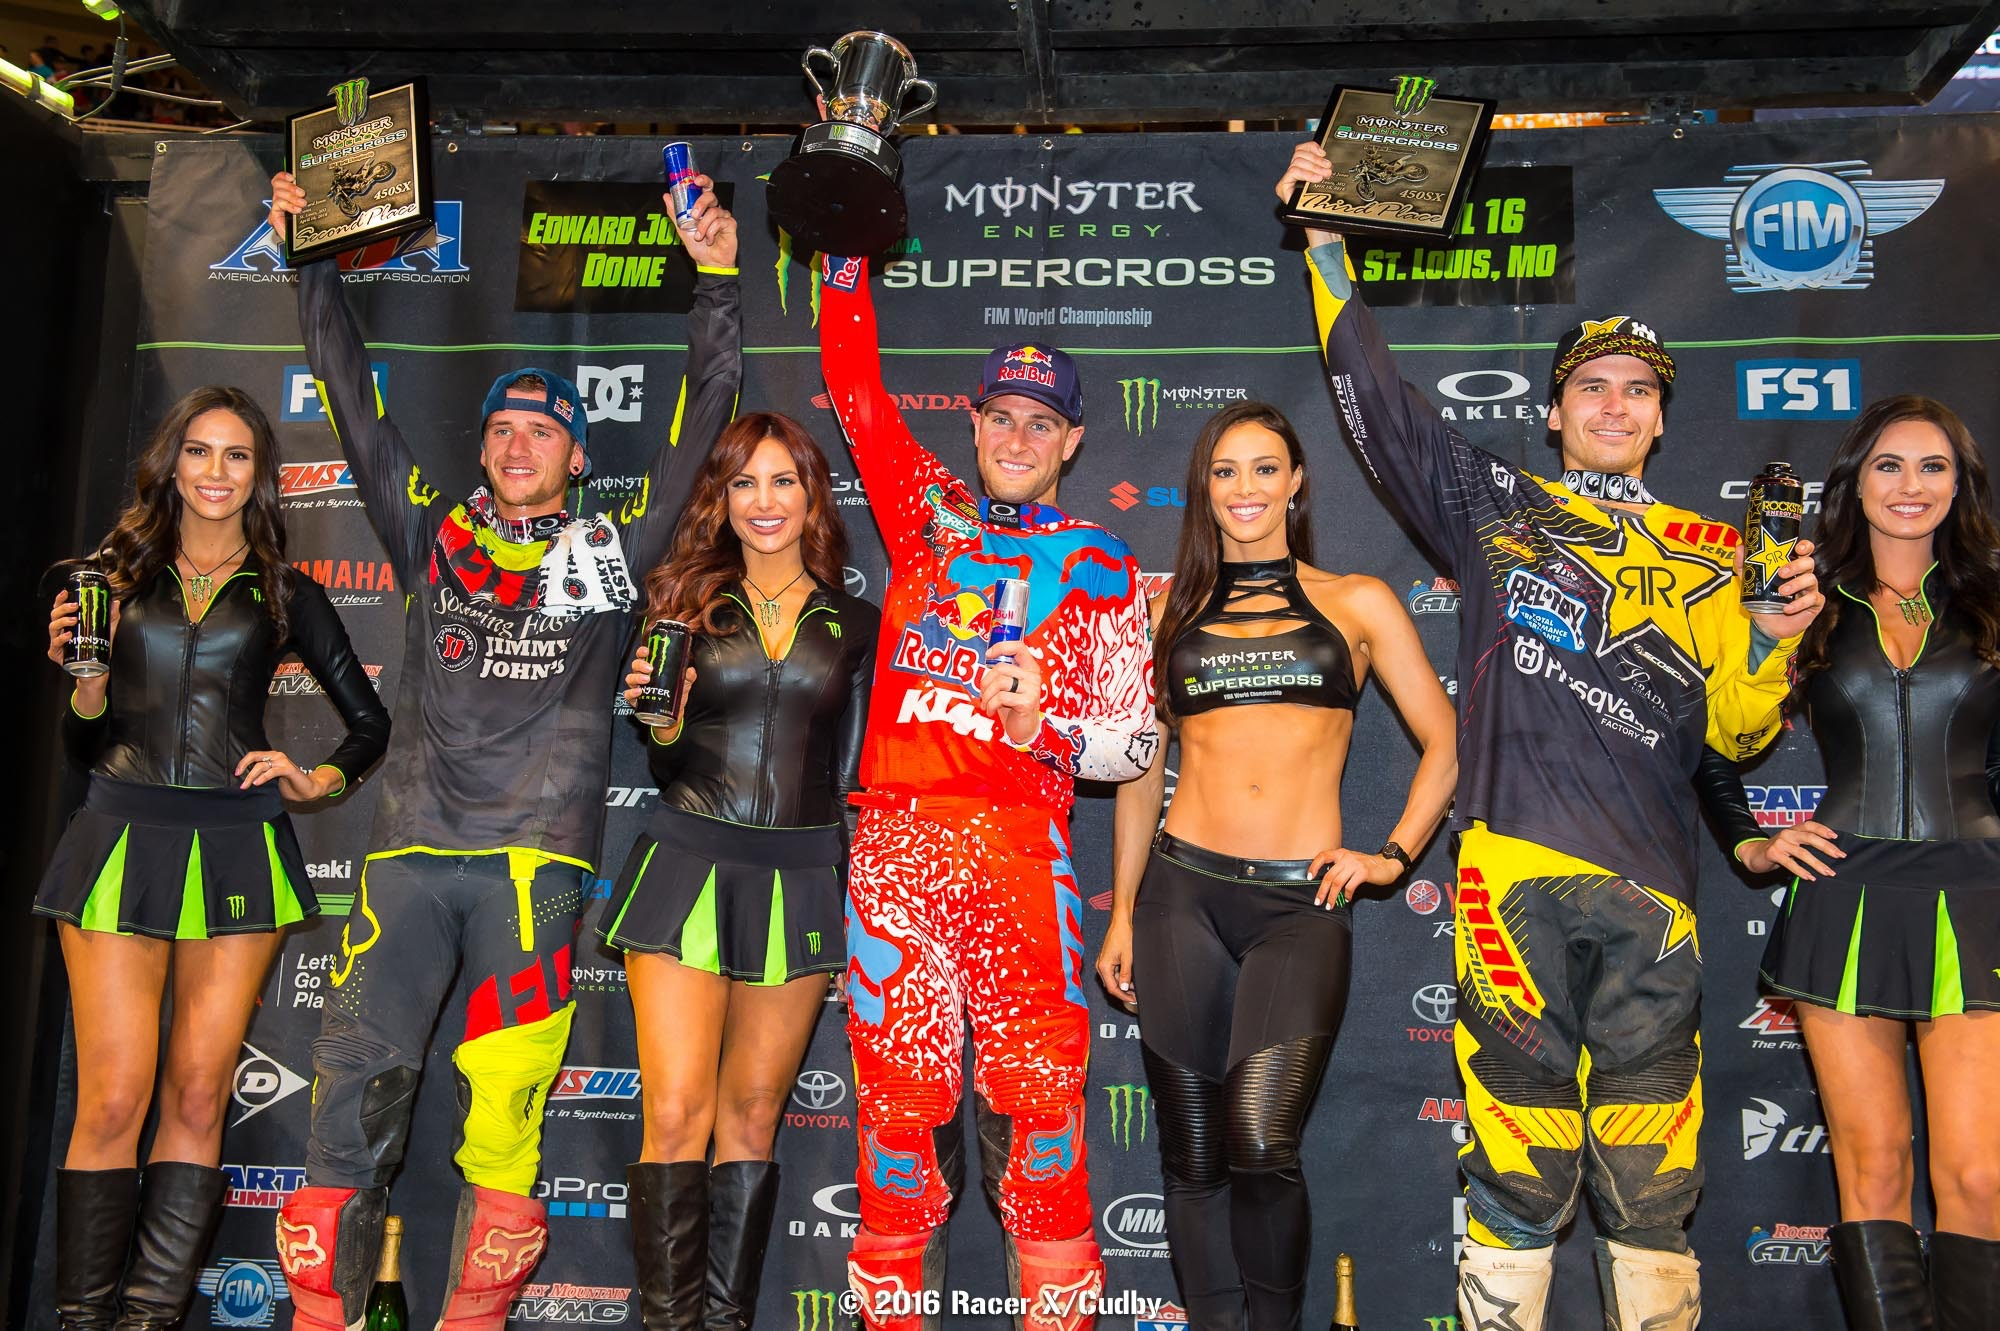 If Dungey puts two more points on Roczen next week the championship is his.